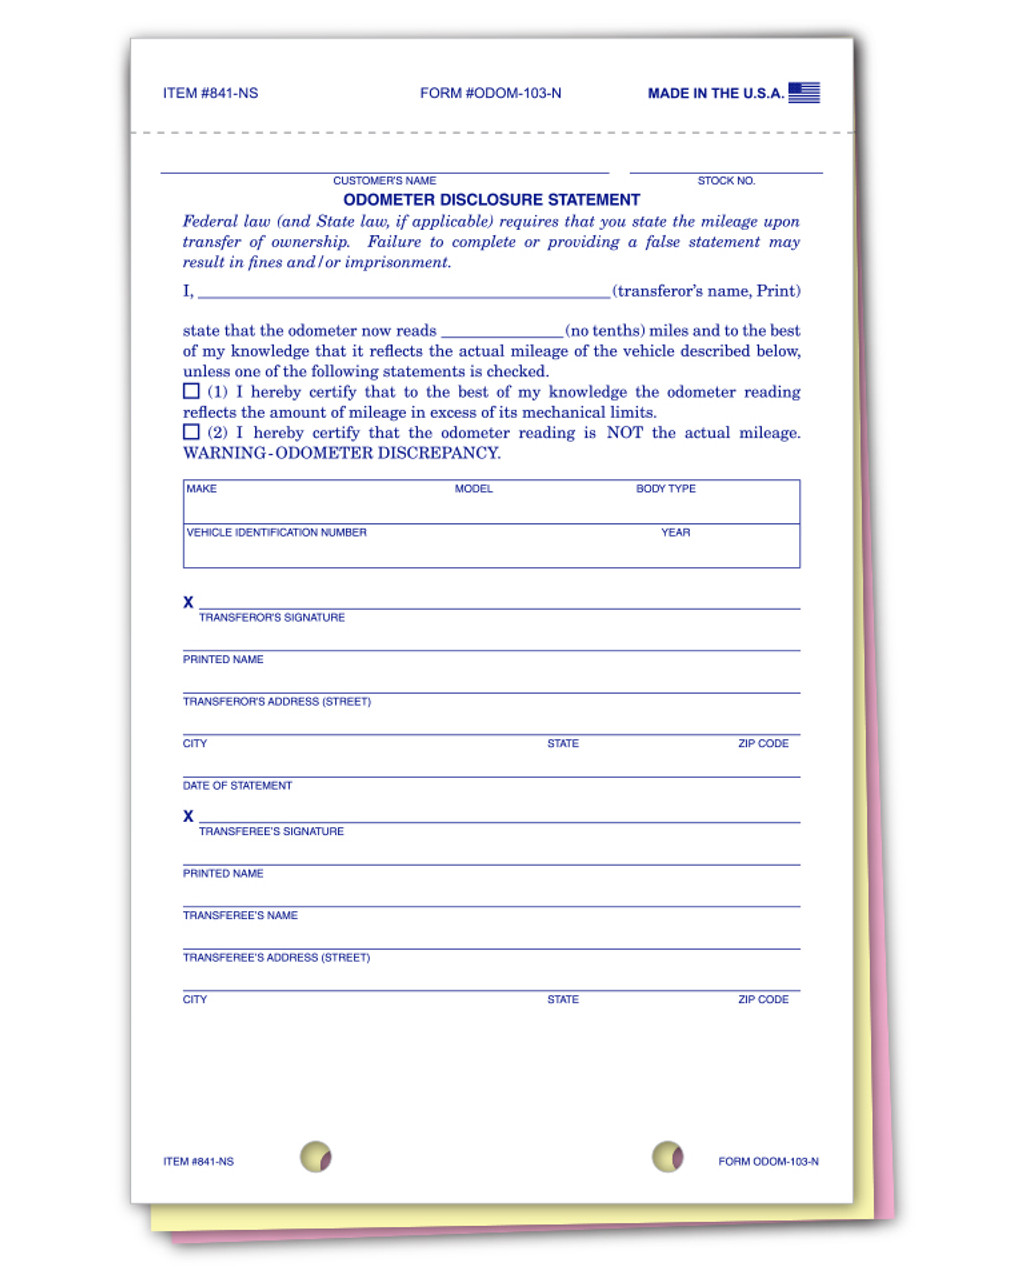 Odometer Disclosure Statements (NO SCREEN) Form ##ODOM-103-N